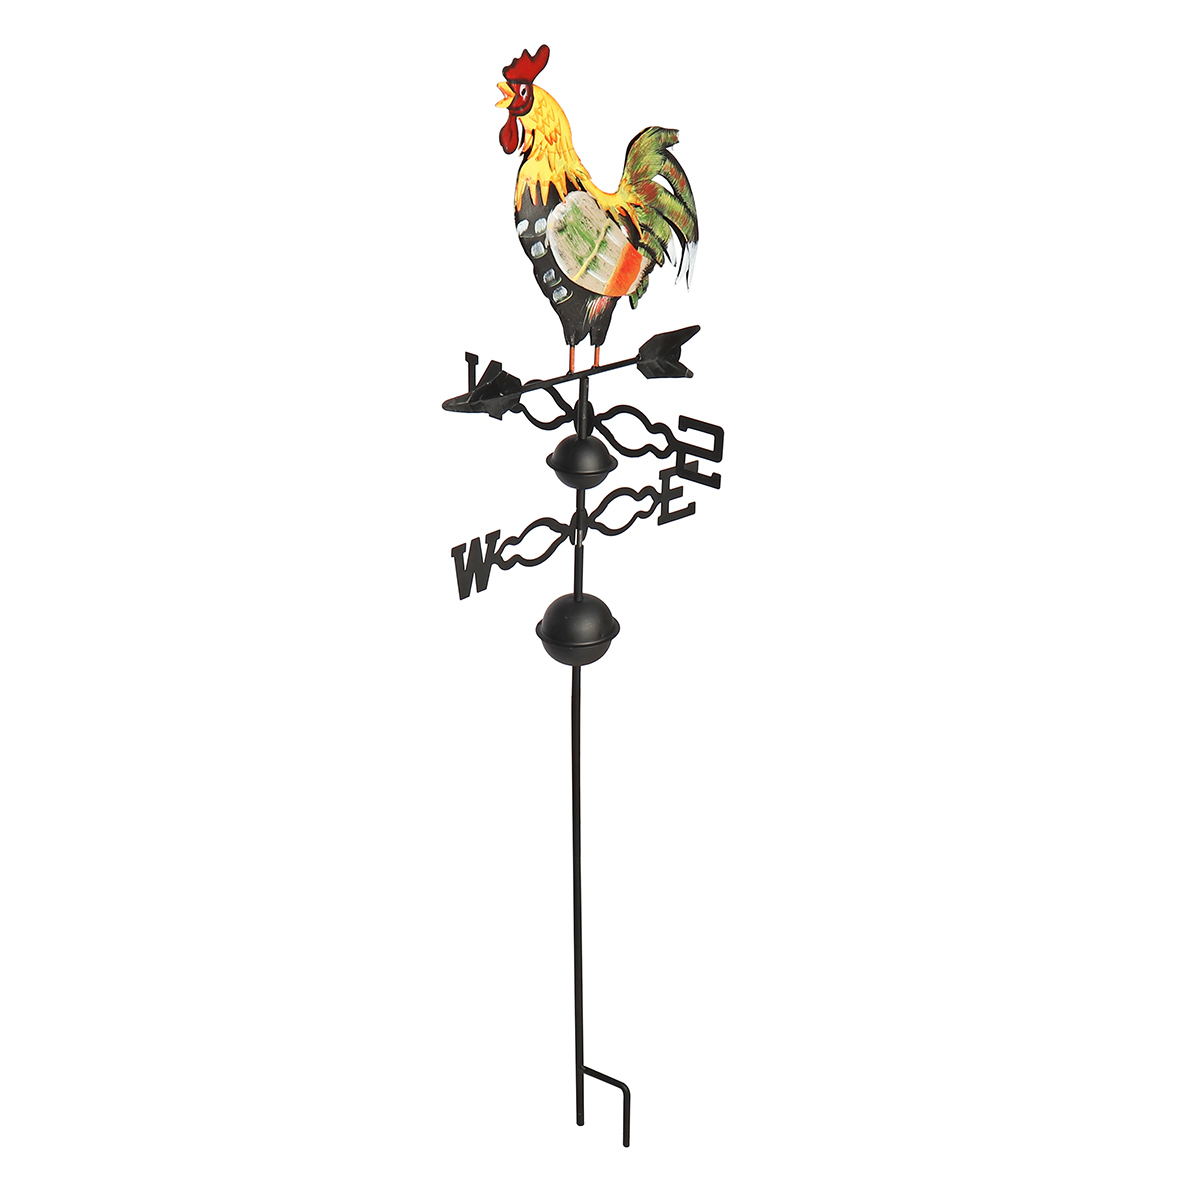 130cm Height Iron Rooster Weathervane Roof Mount Weather